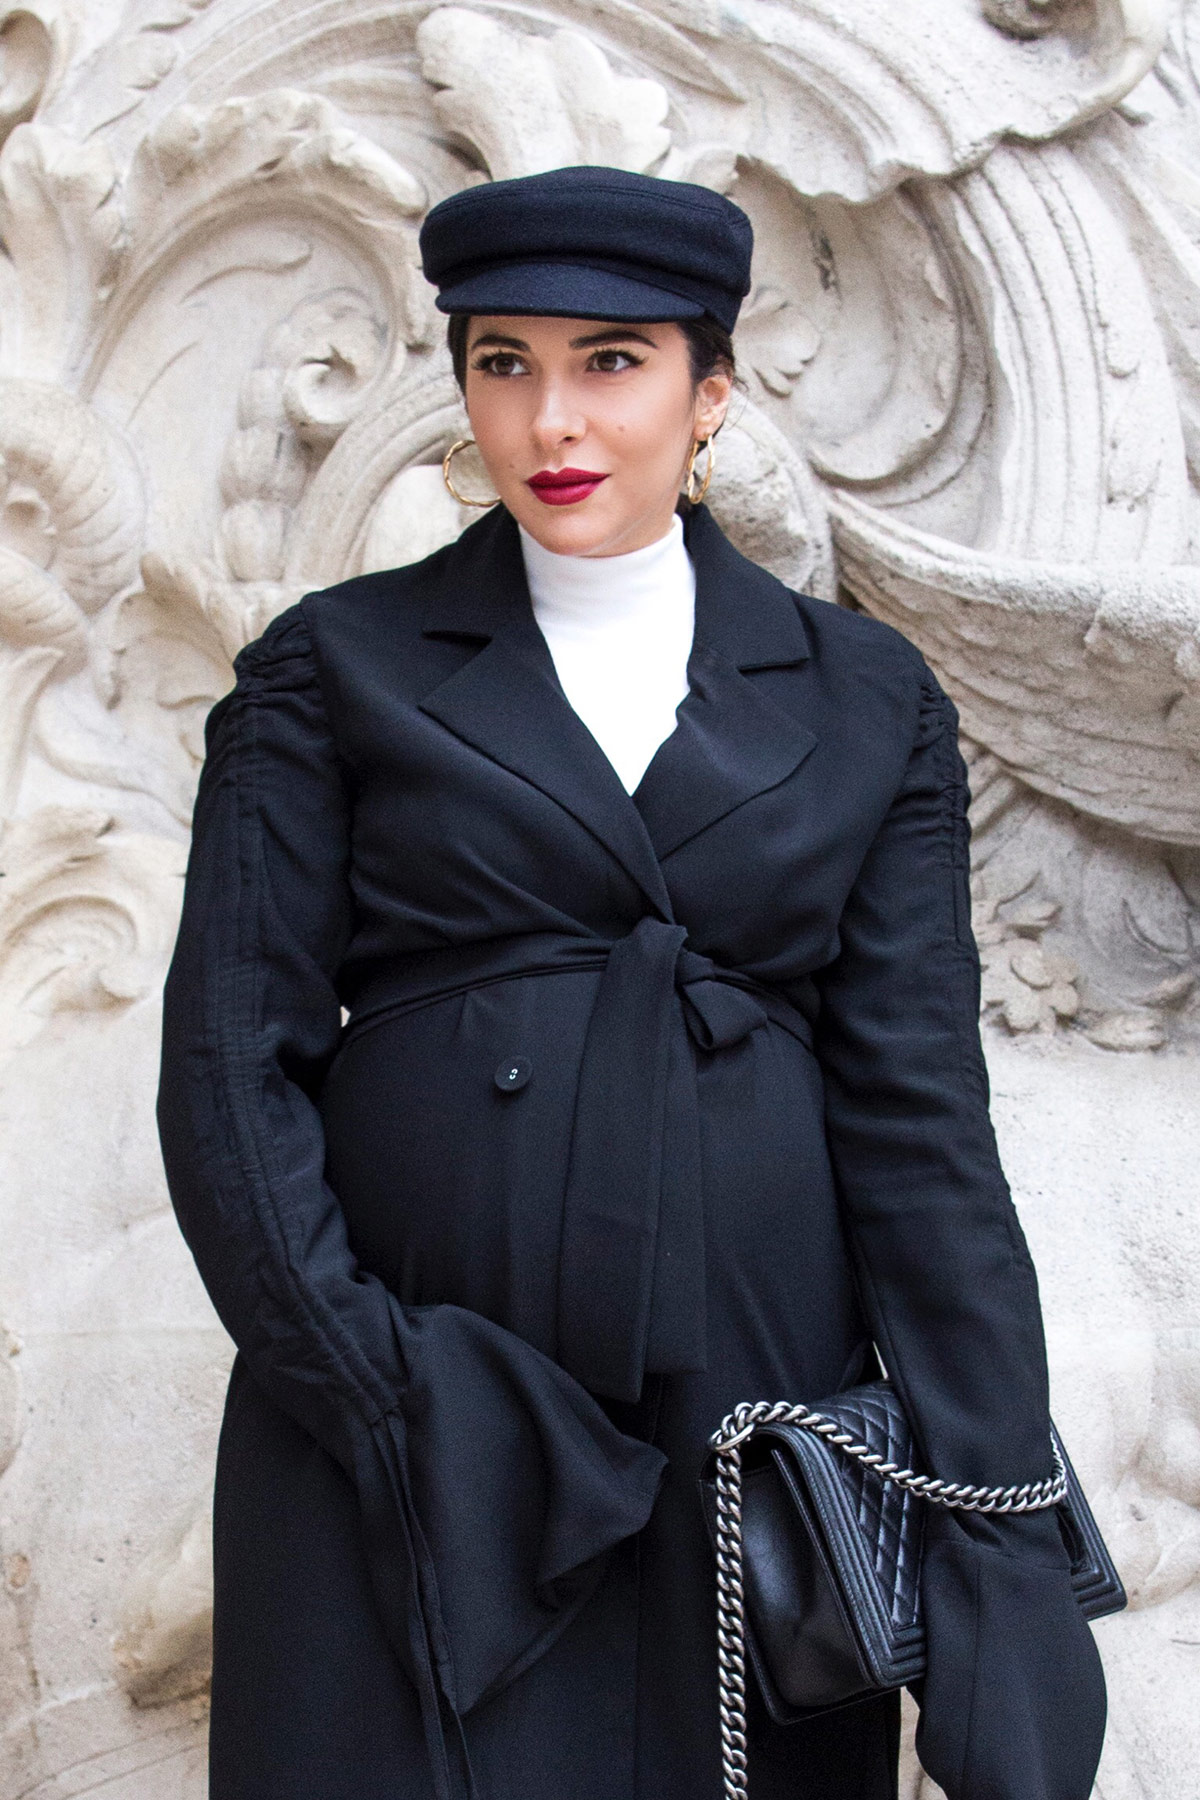 Black trench dress and baker boy hat for John Galliano Show during PFW Paris Fashion Week by Stella Asteria - Fashion & Lifestyle Blogger - Paris Fashion Week Street Style - Chanel boy bag, trench dress and total black look